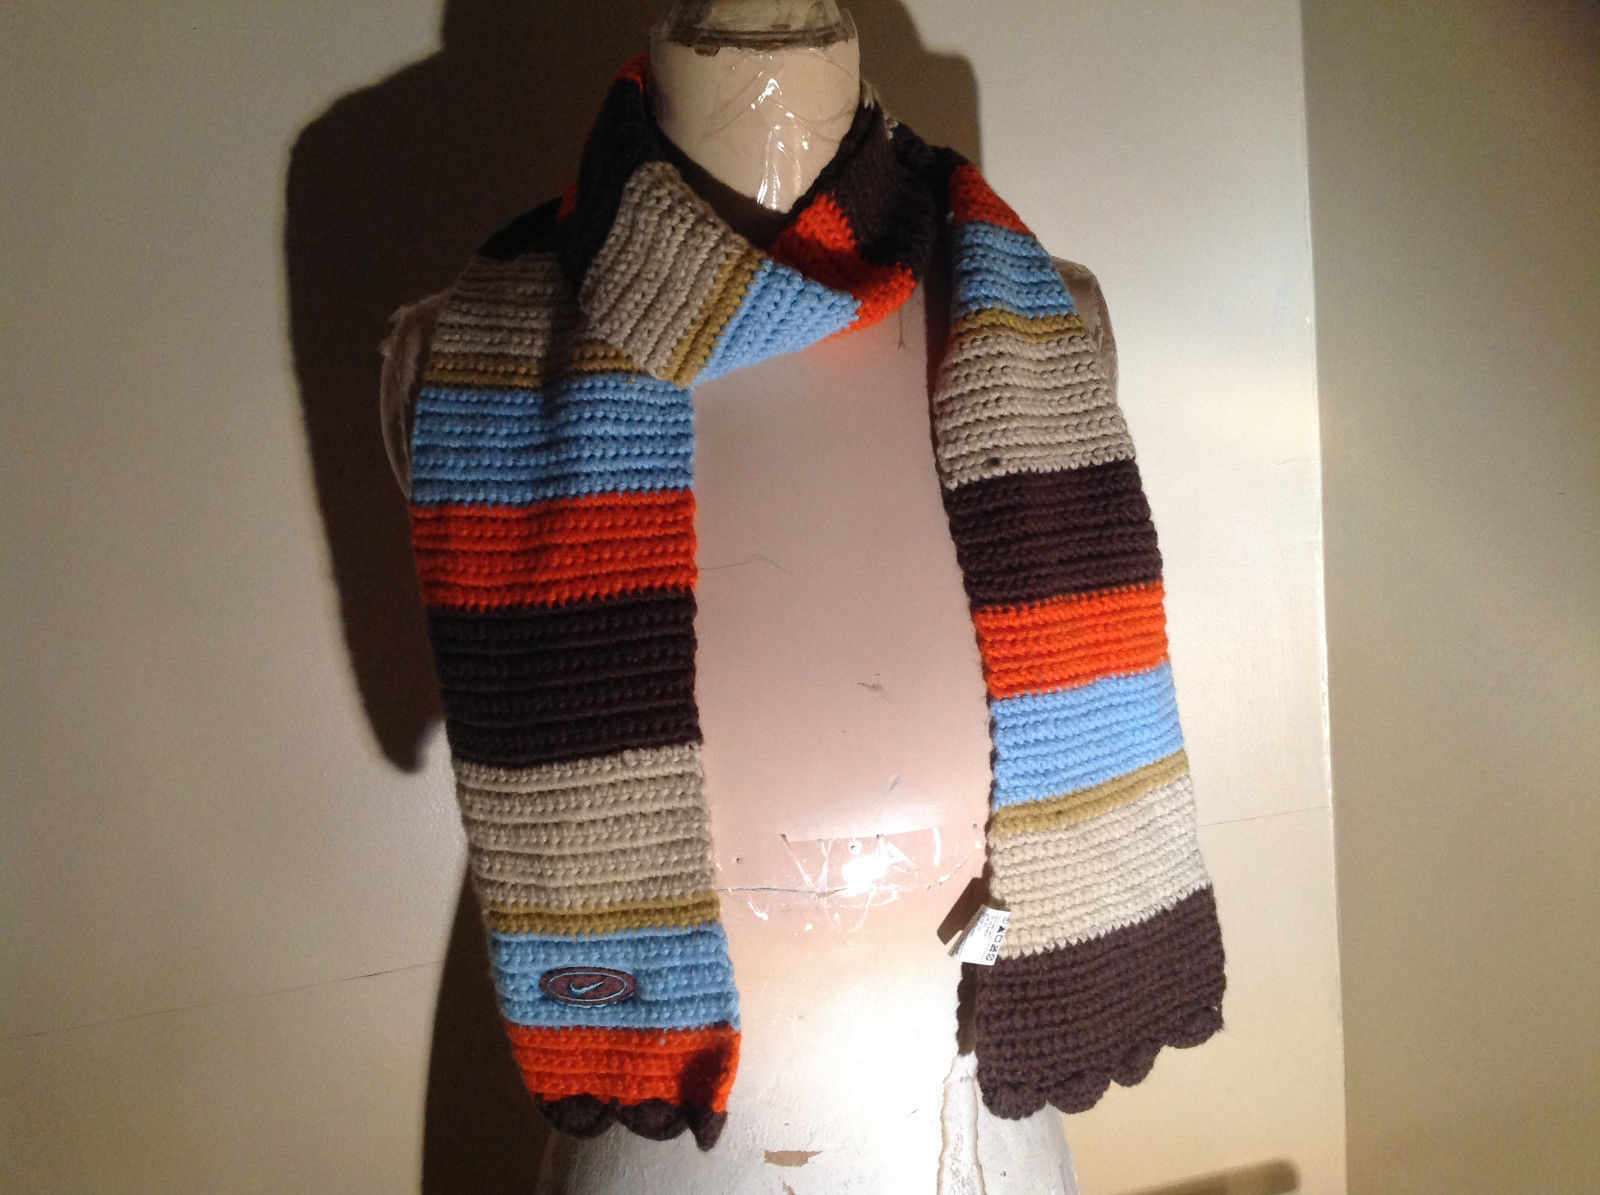 Striped Brown Orange Blue and Tan Knitted Scarf by Nike 68 Inches Long